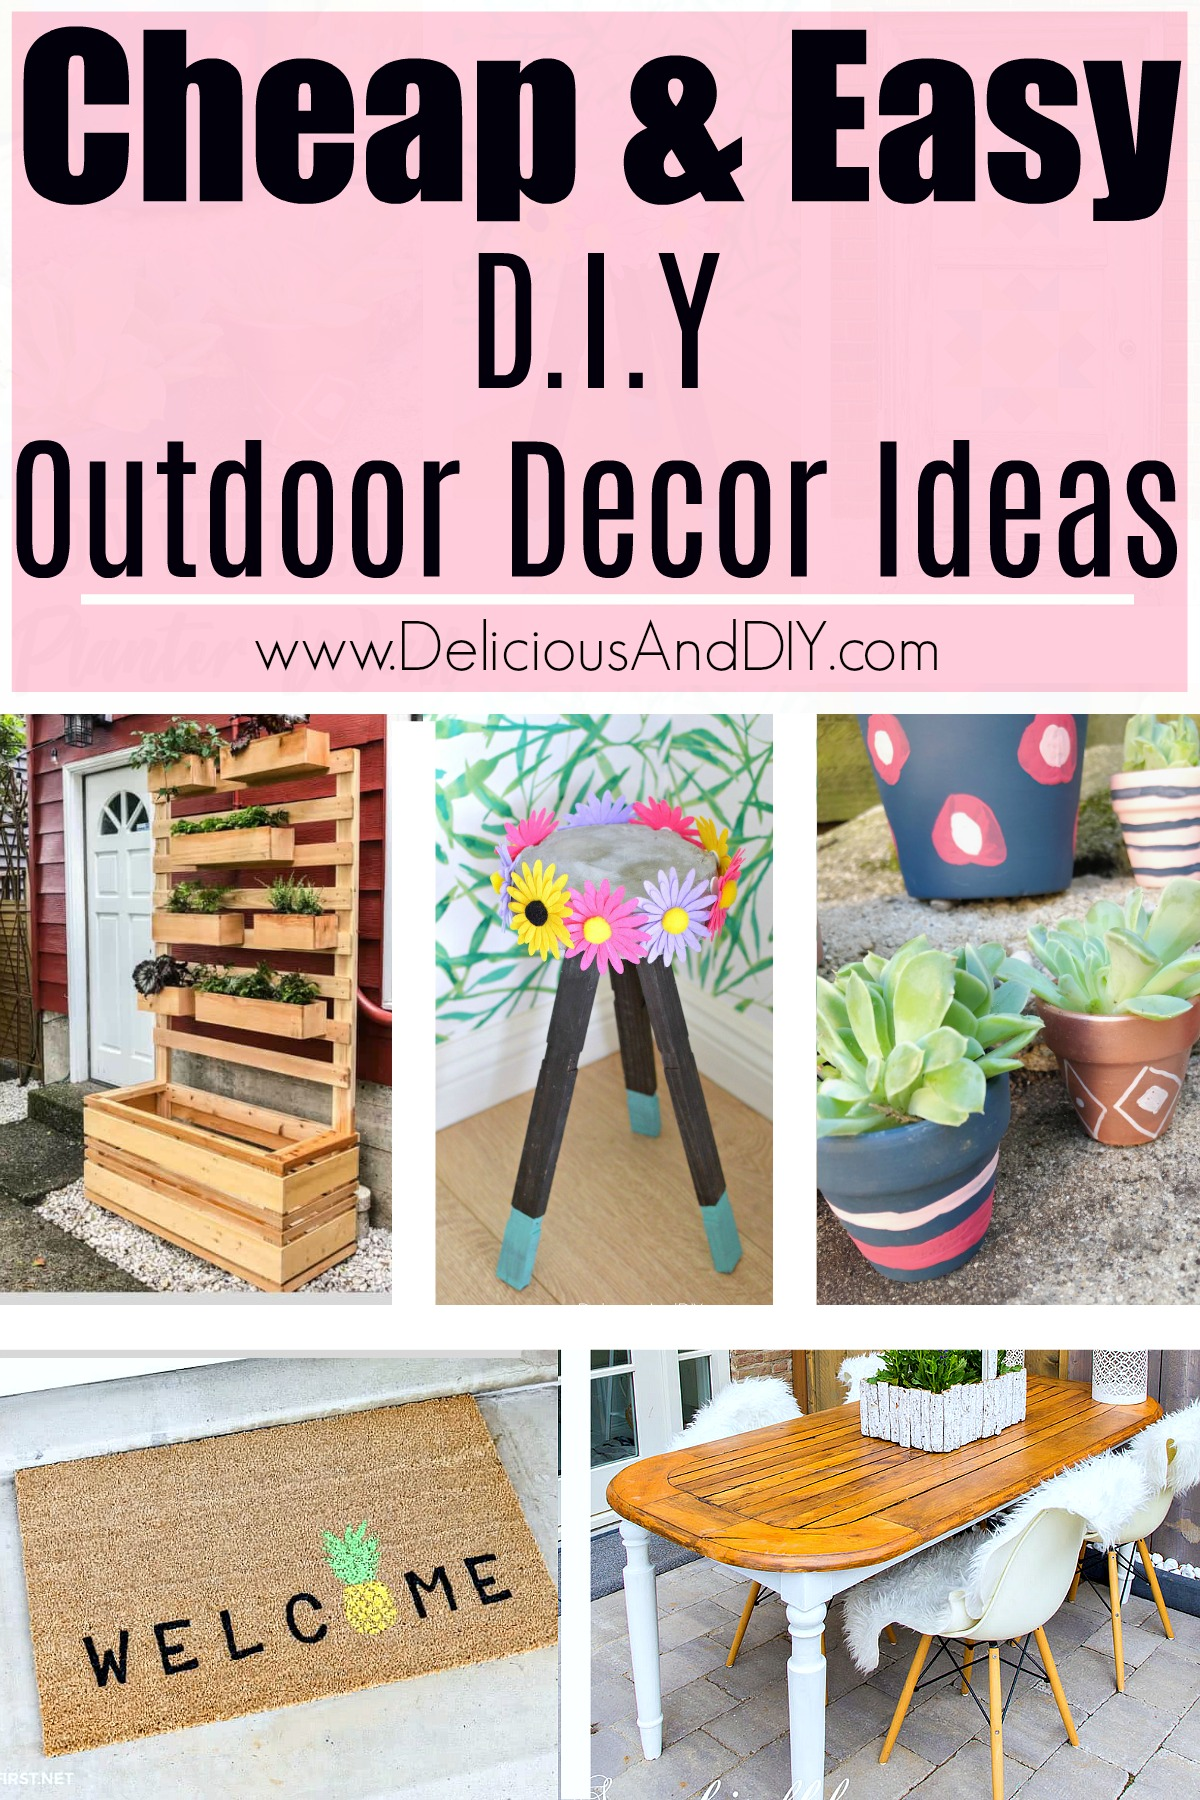 Backyard Decorating Ideas on a Budget - Delicious And DIY